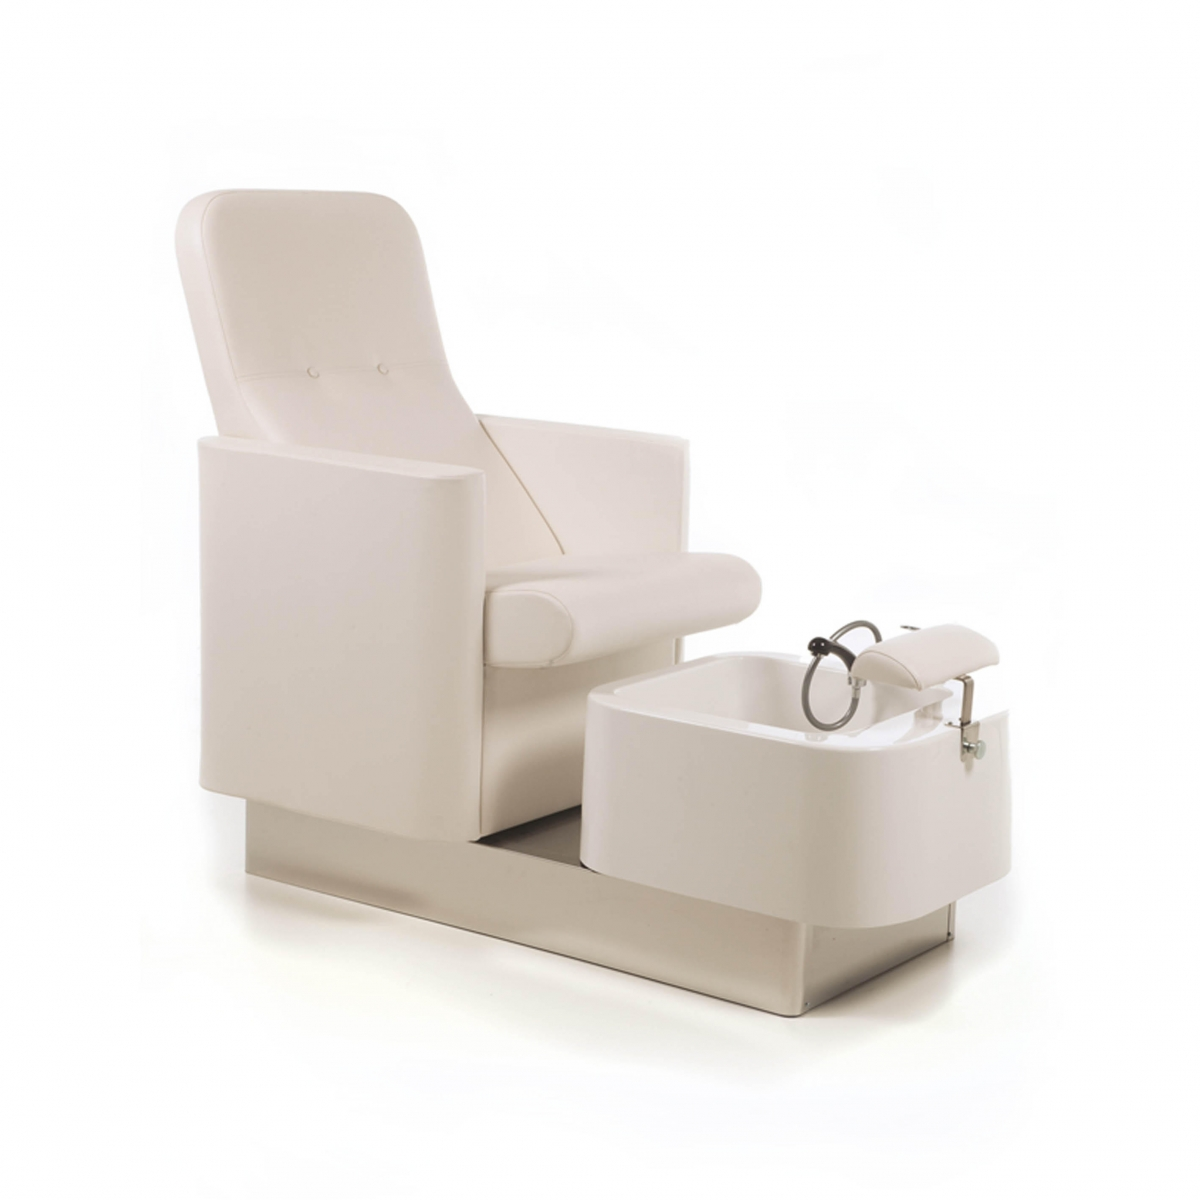 Pedicure Chair Hydrolounge Sillon De Pedicura Gamma And Bross